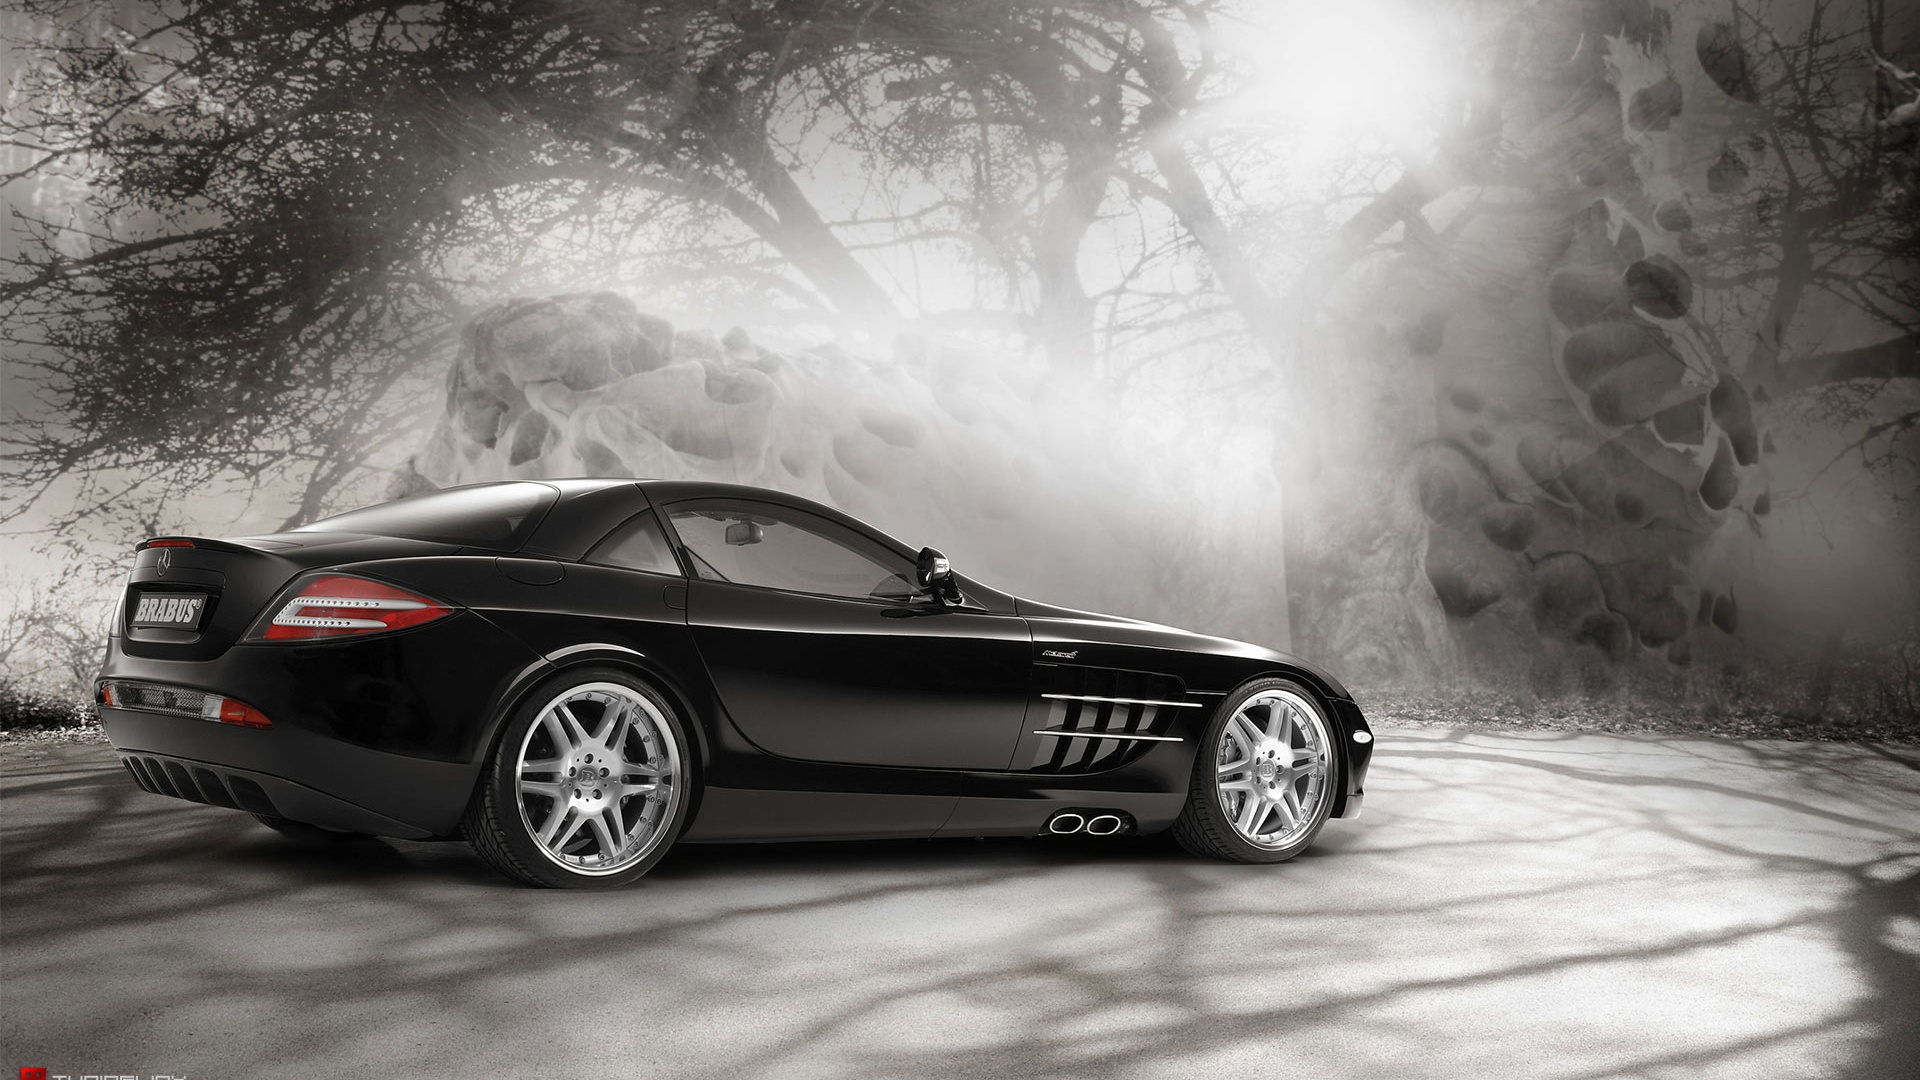 1920x1080 Mercedes Slr In Magic Forest 2 Desktop Pc And